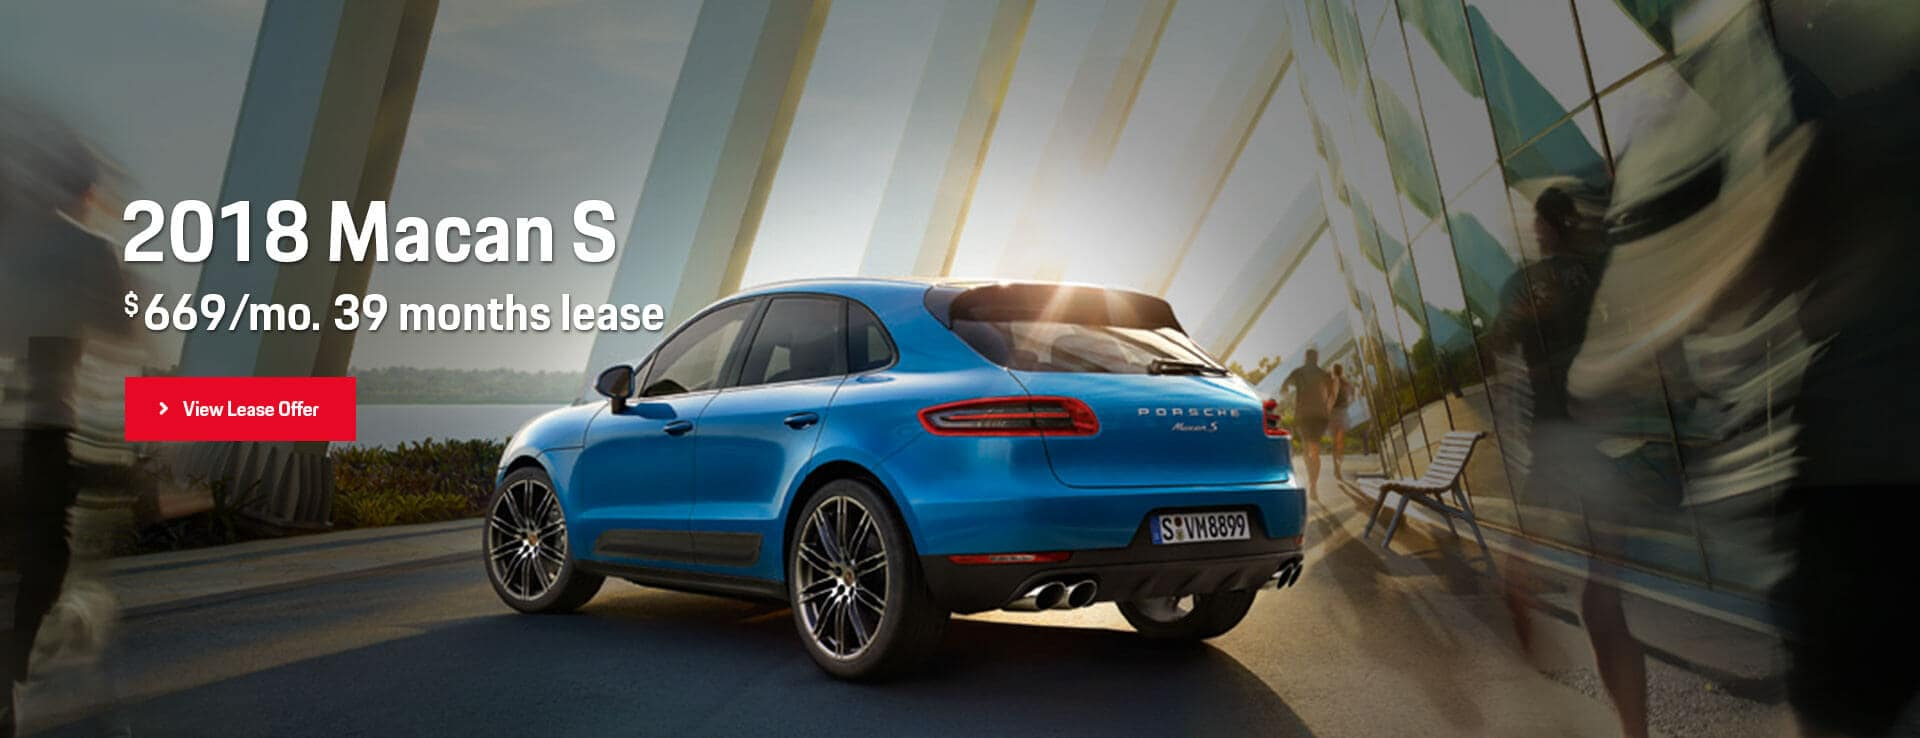 Porsche Macan S Lease Offer Hero